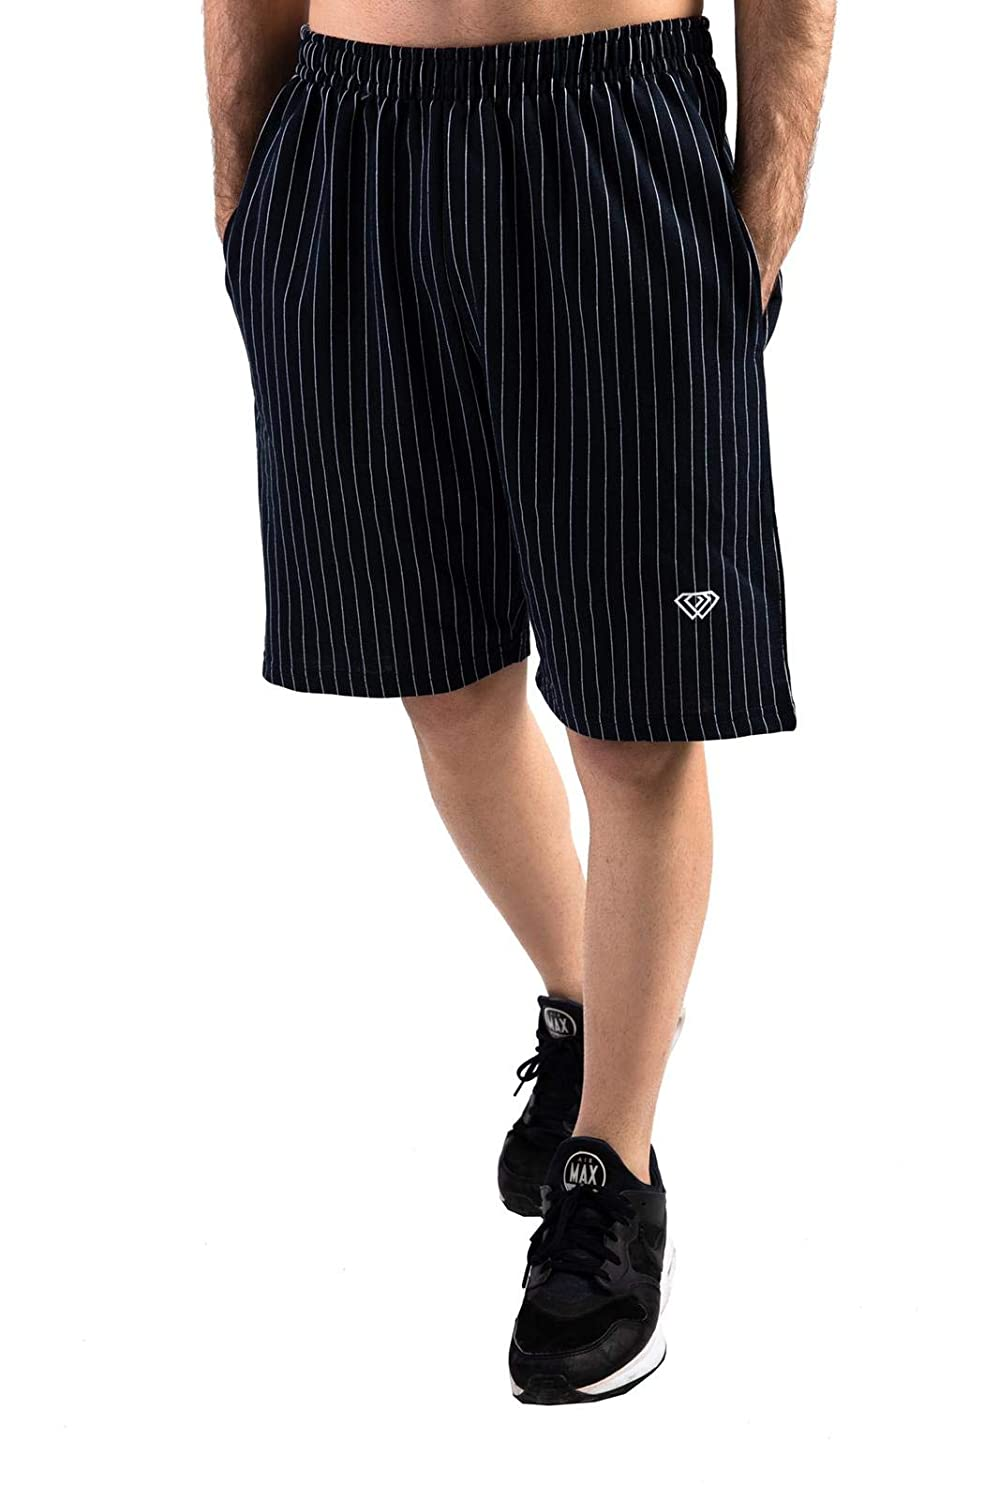 CSN Men/'s Casual Striped Shorts with Pockets 6 Sizes